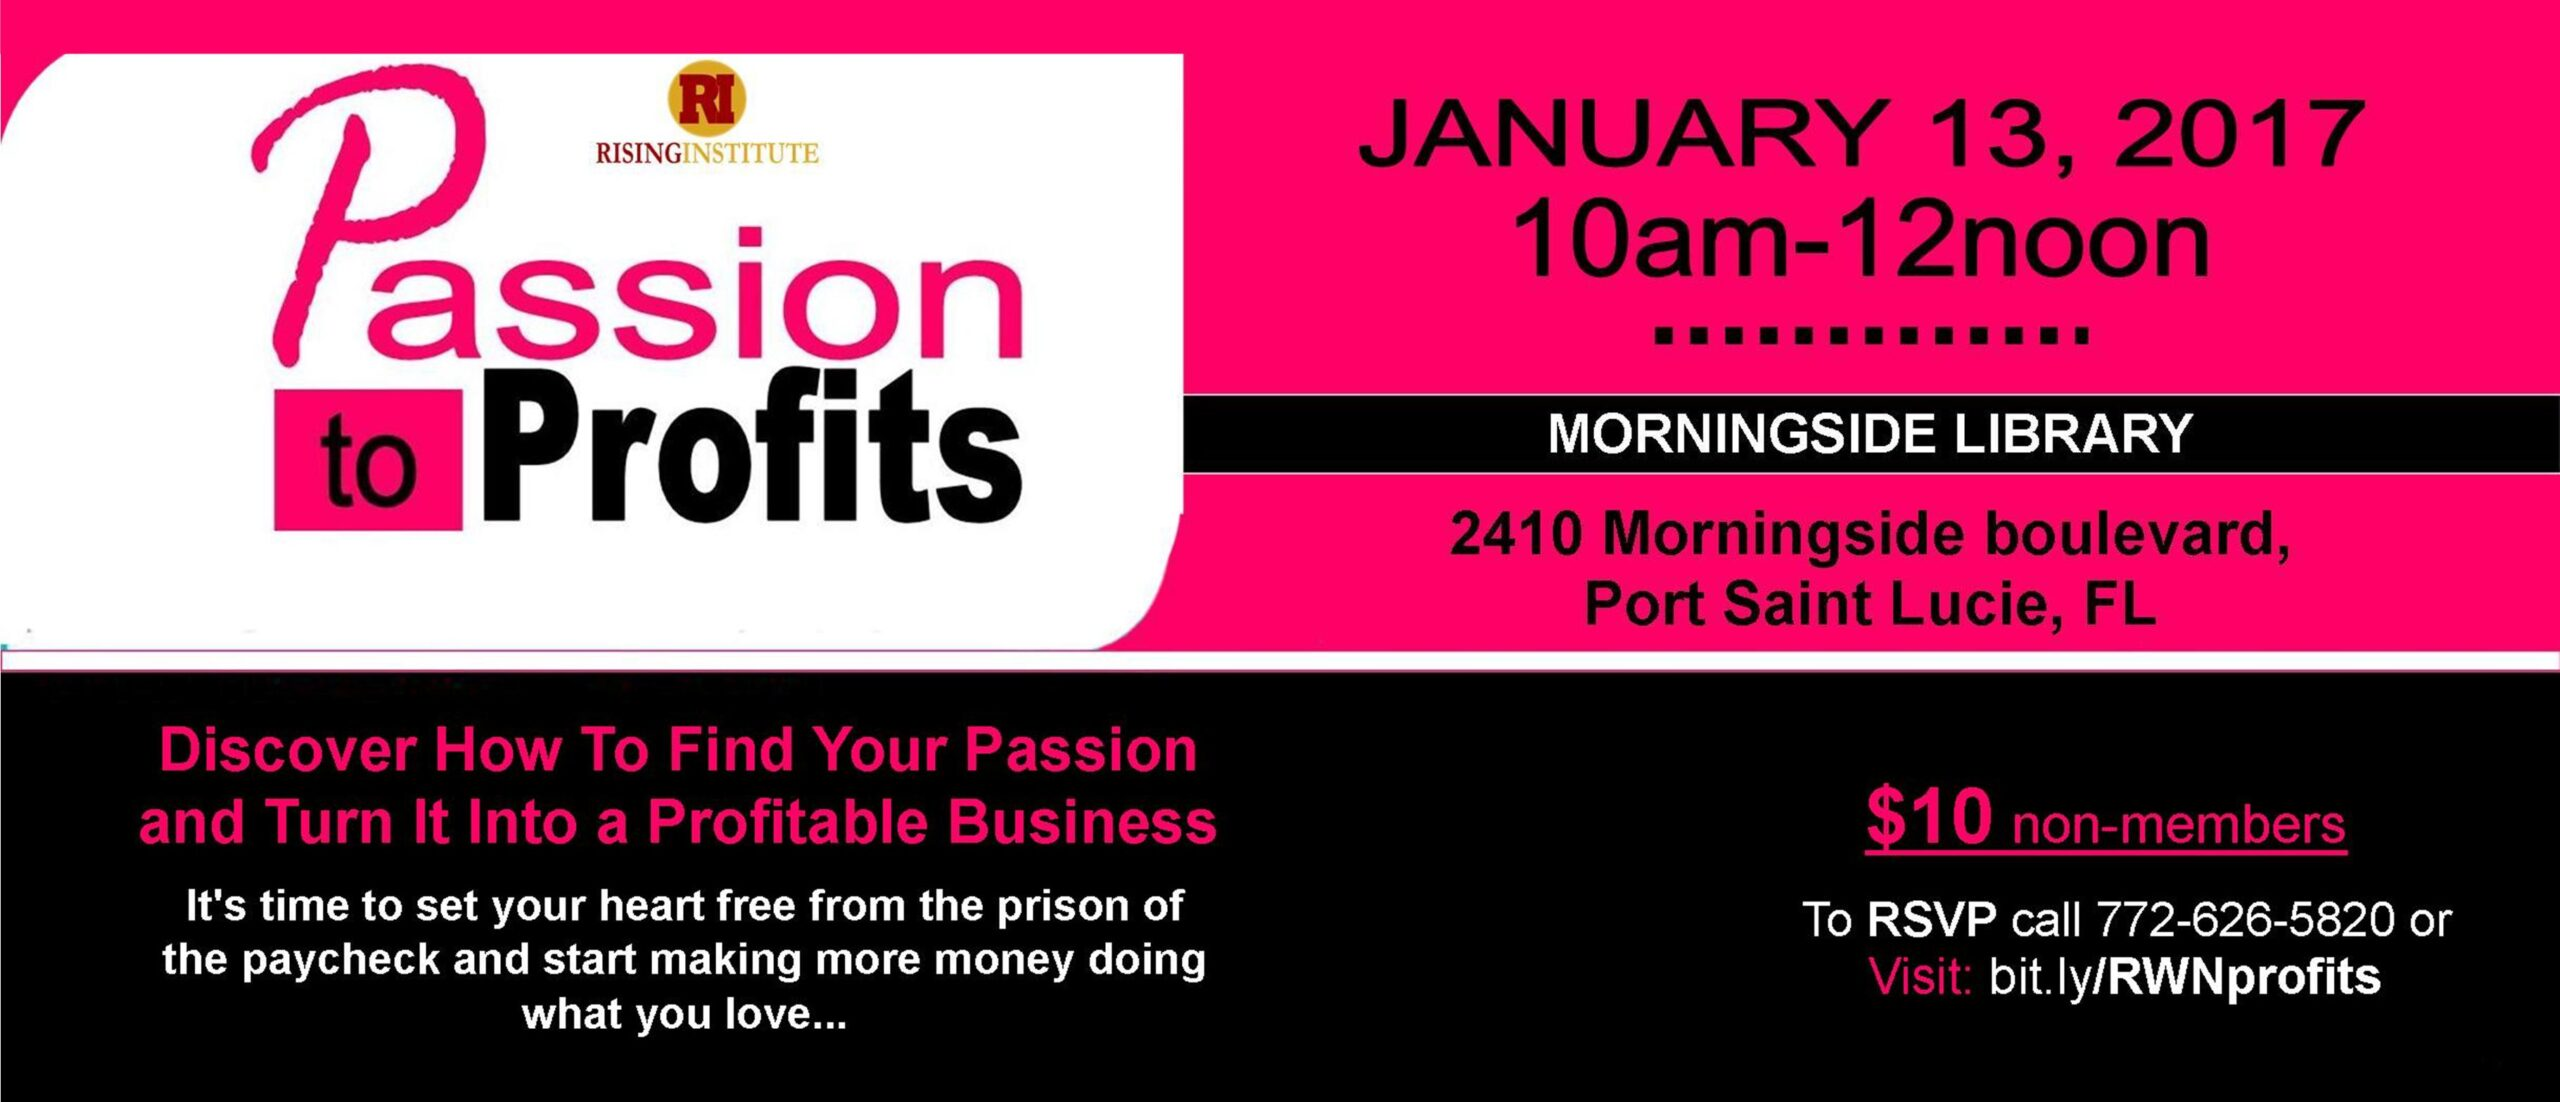 Discover How To Find Your Passion and Turn It Into a Profitable Business